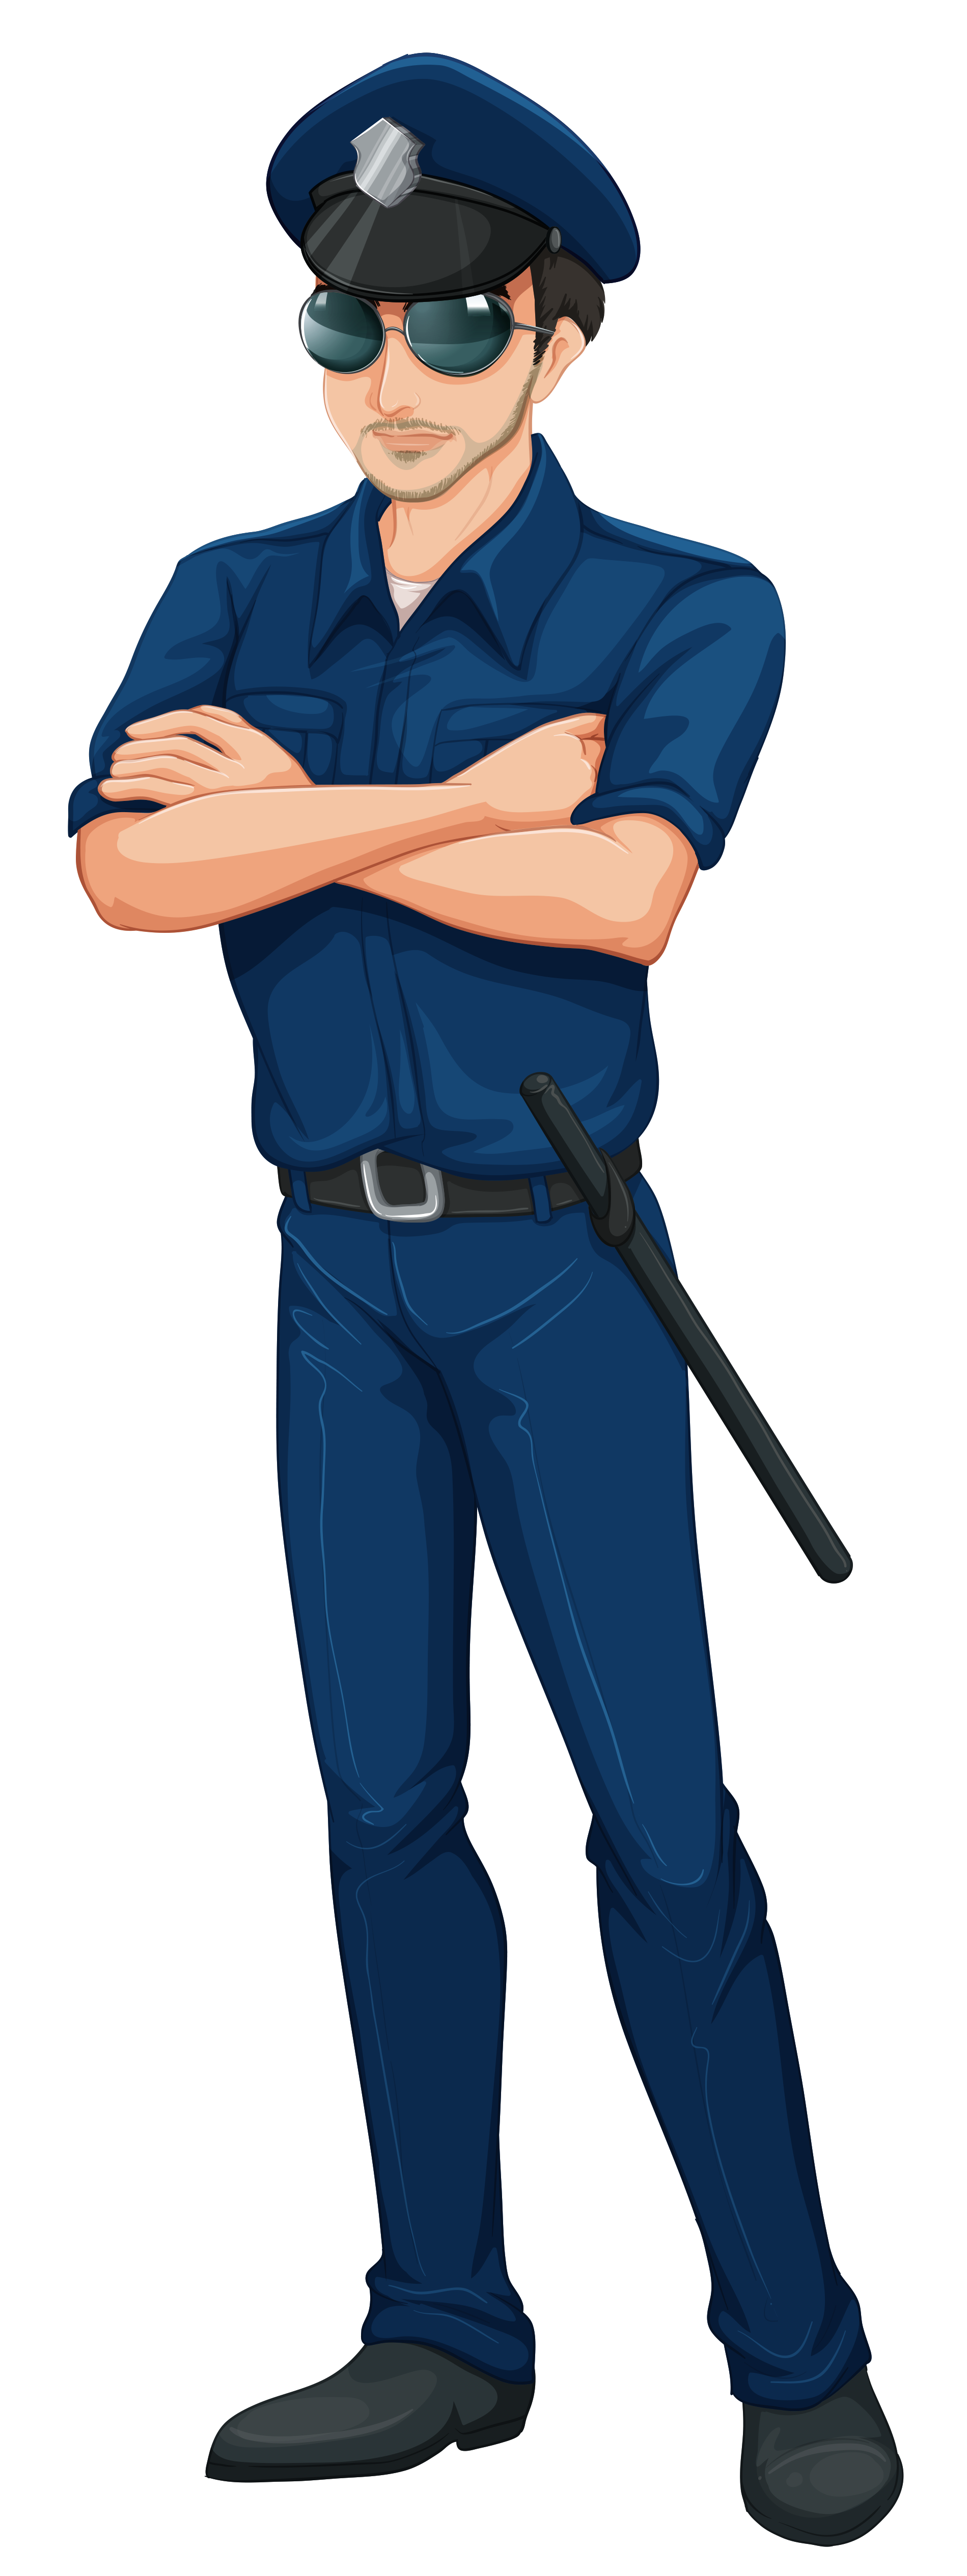 clip art royalty free stock Clipart cop. Police hd png transparent